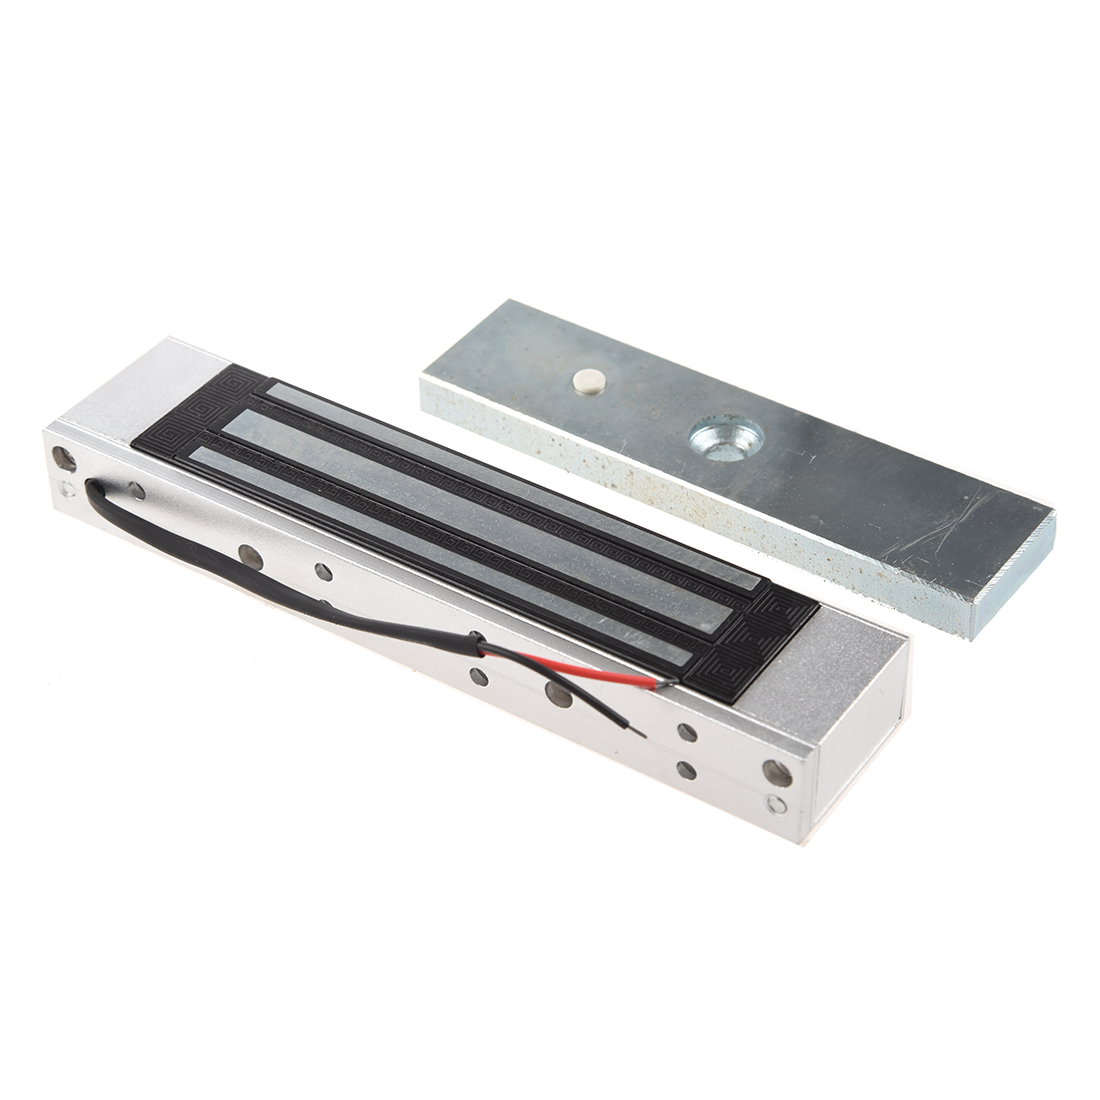 DC12V 60KG Mini Electromagnetic Lock Electronic Magnetic Door Power on Magnetical Lock for Access Control System Electromagnetic Lock